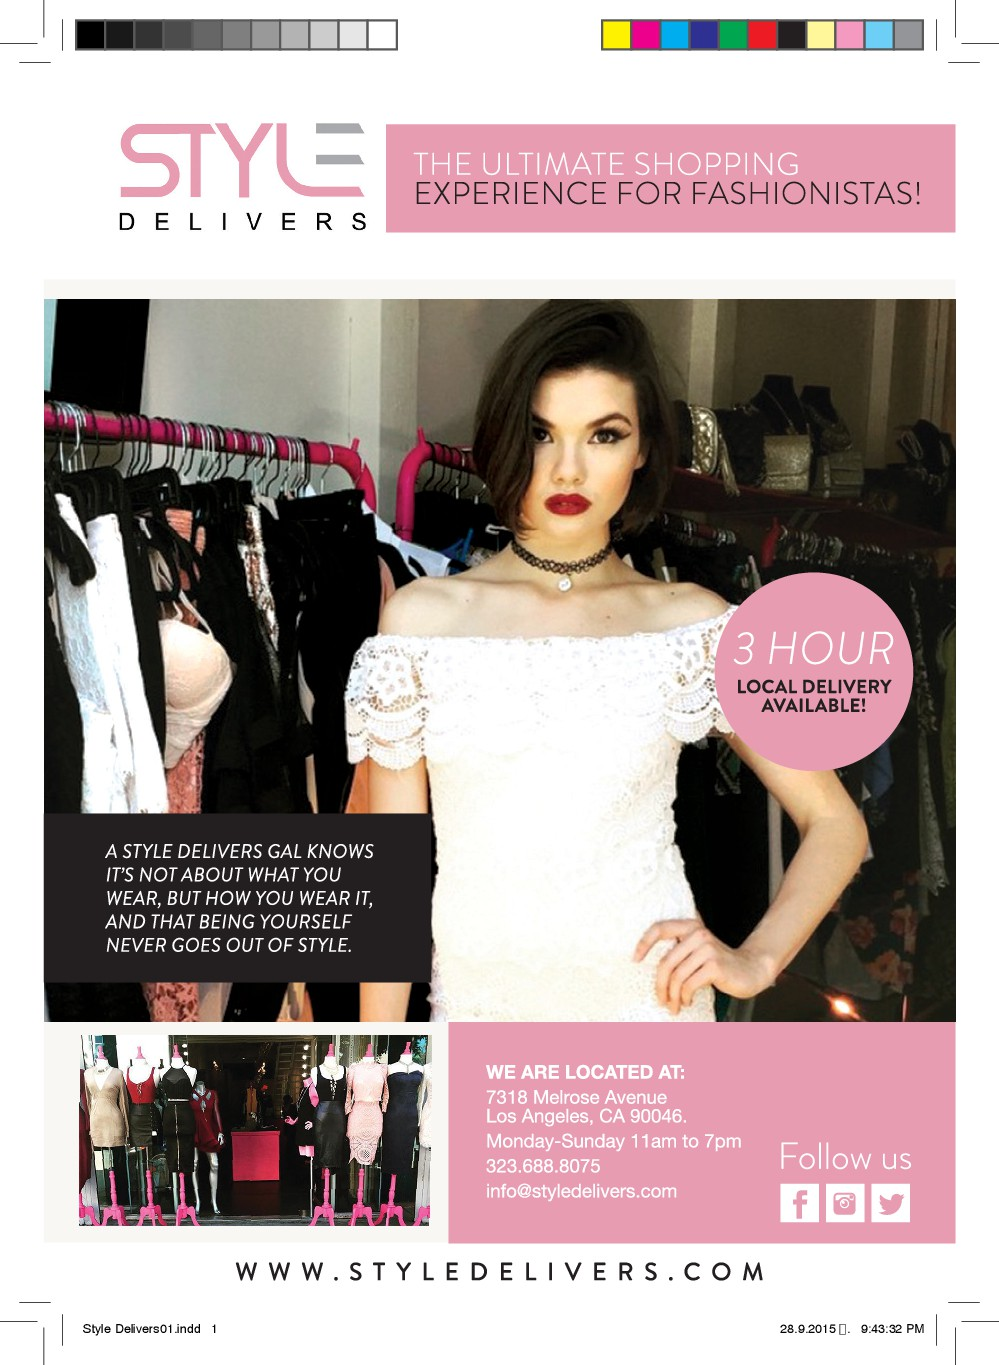 Design Flyer/Postcard for a NEW Boutique/ Brand in Los Angeles, CA!!